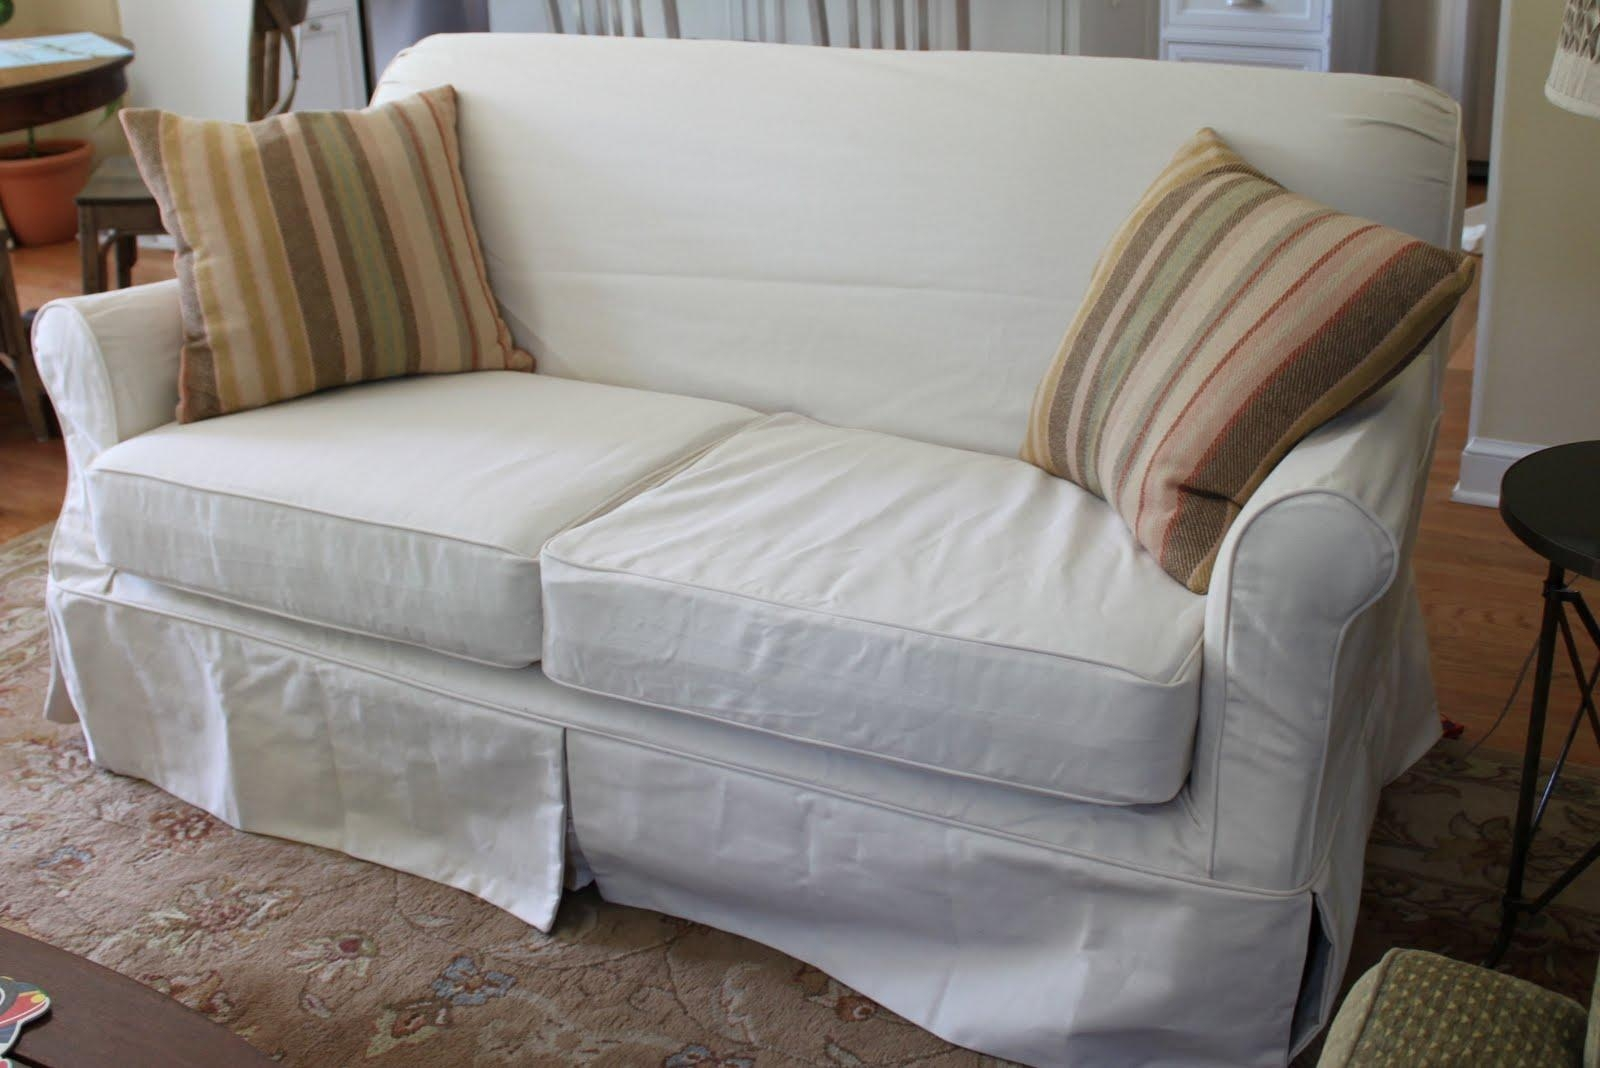 White Denim Slipcover Couches | Tehranmix Decoration Intended For Denim Sofa Slipcovers (View 14 of 20)